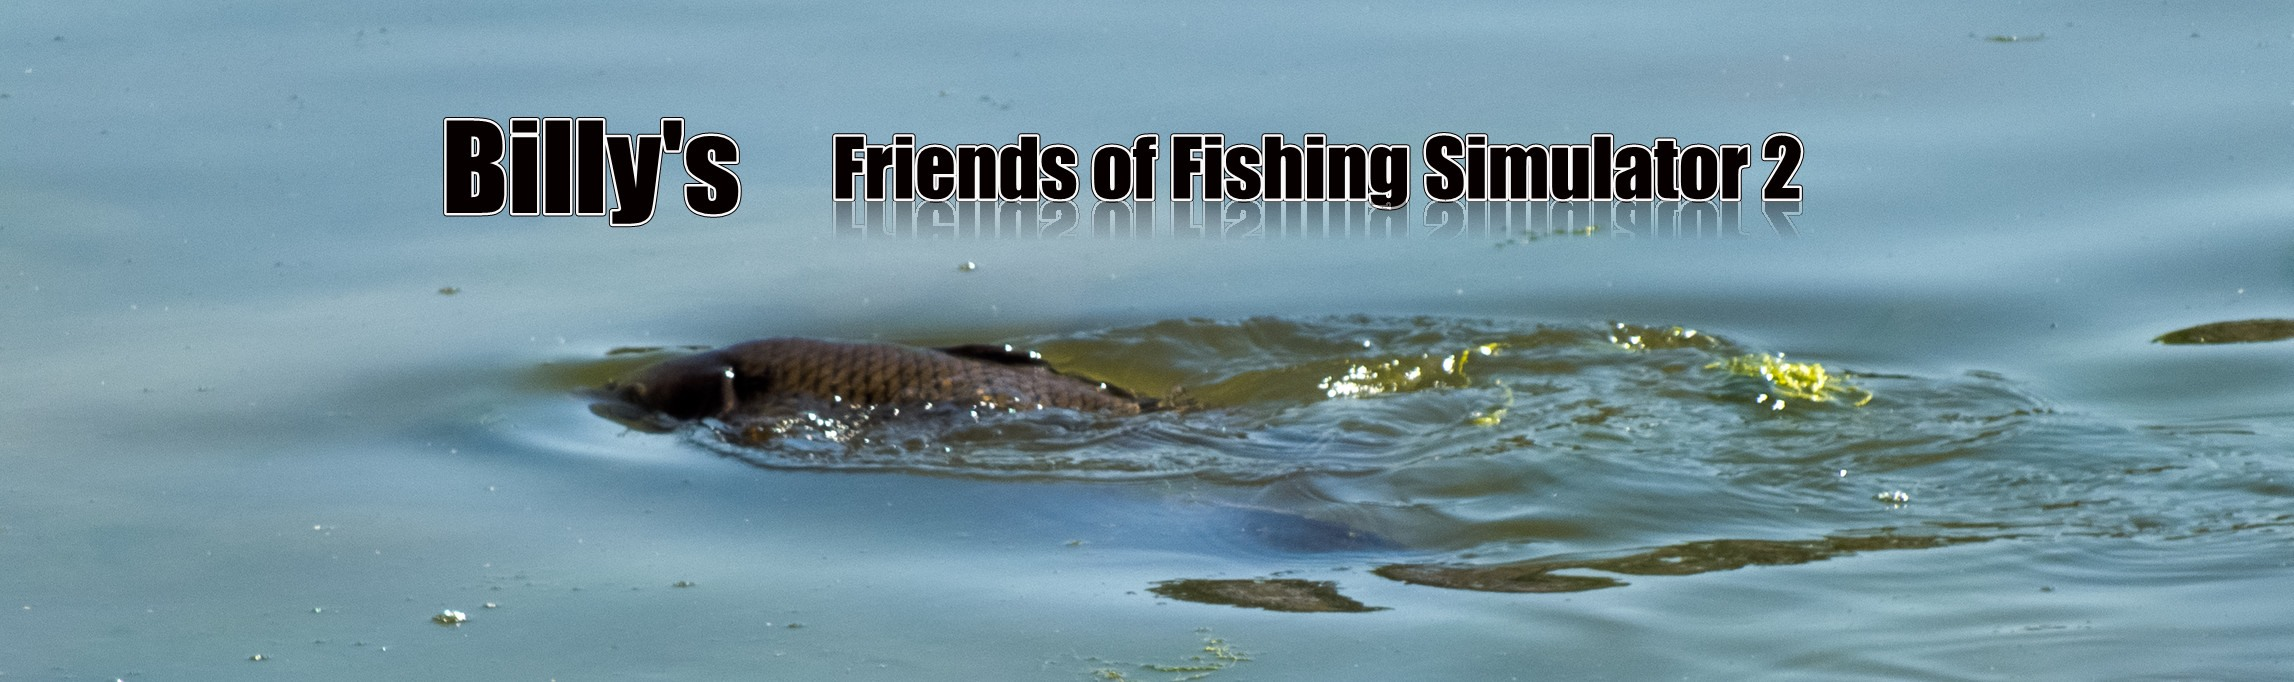 Friends of Fishing Simulator 2